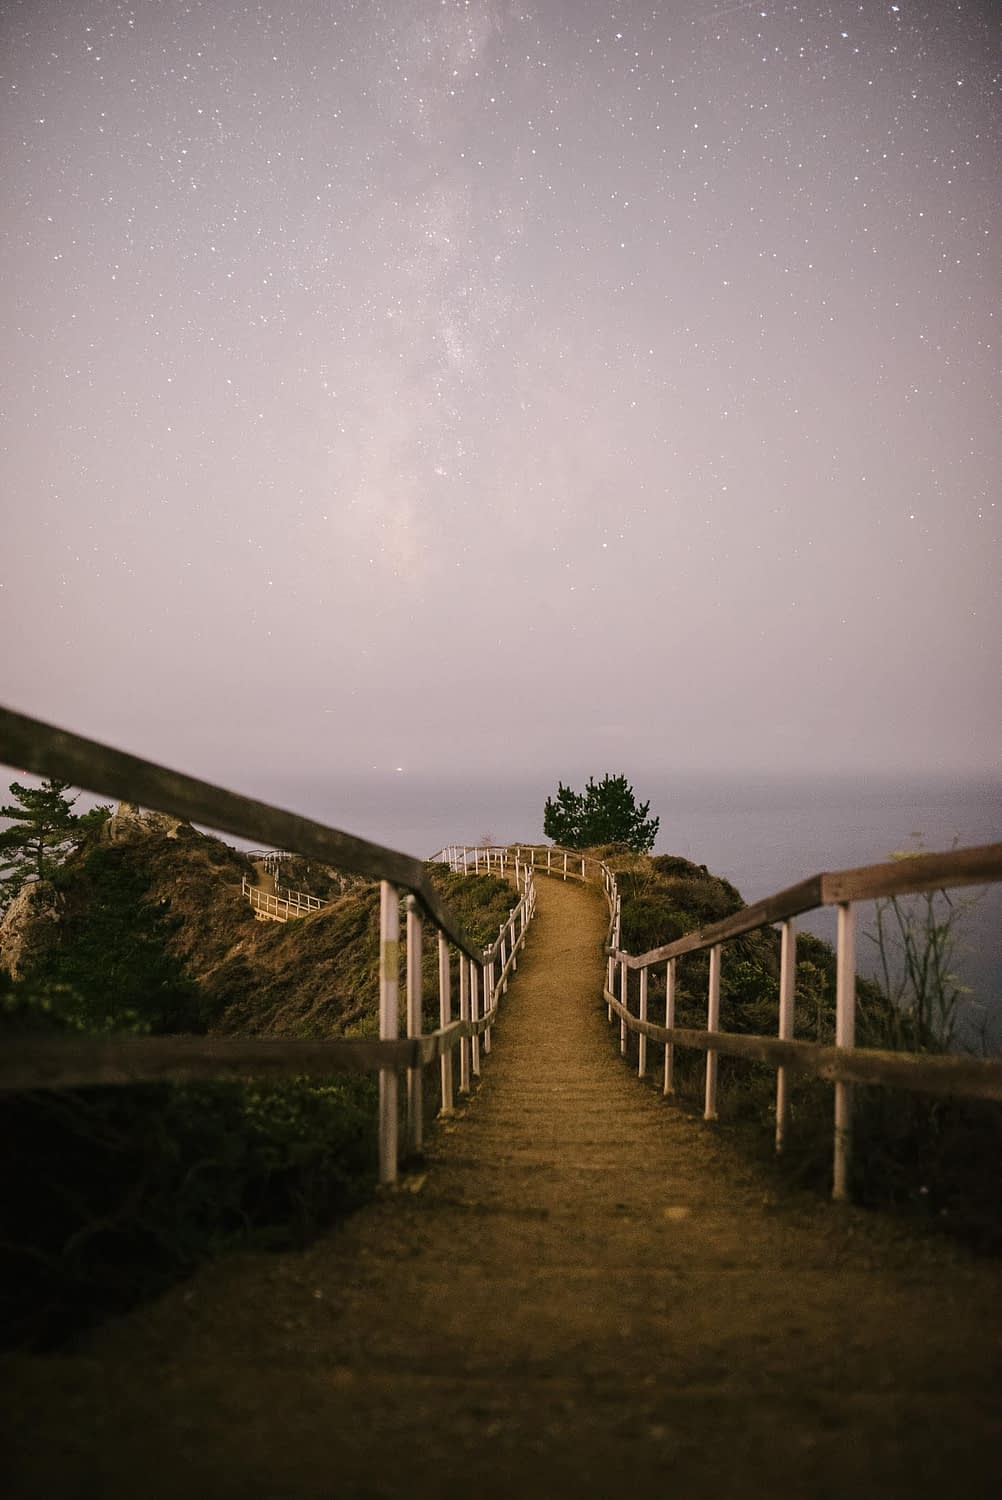 Muir Beach Lookout Night Image